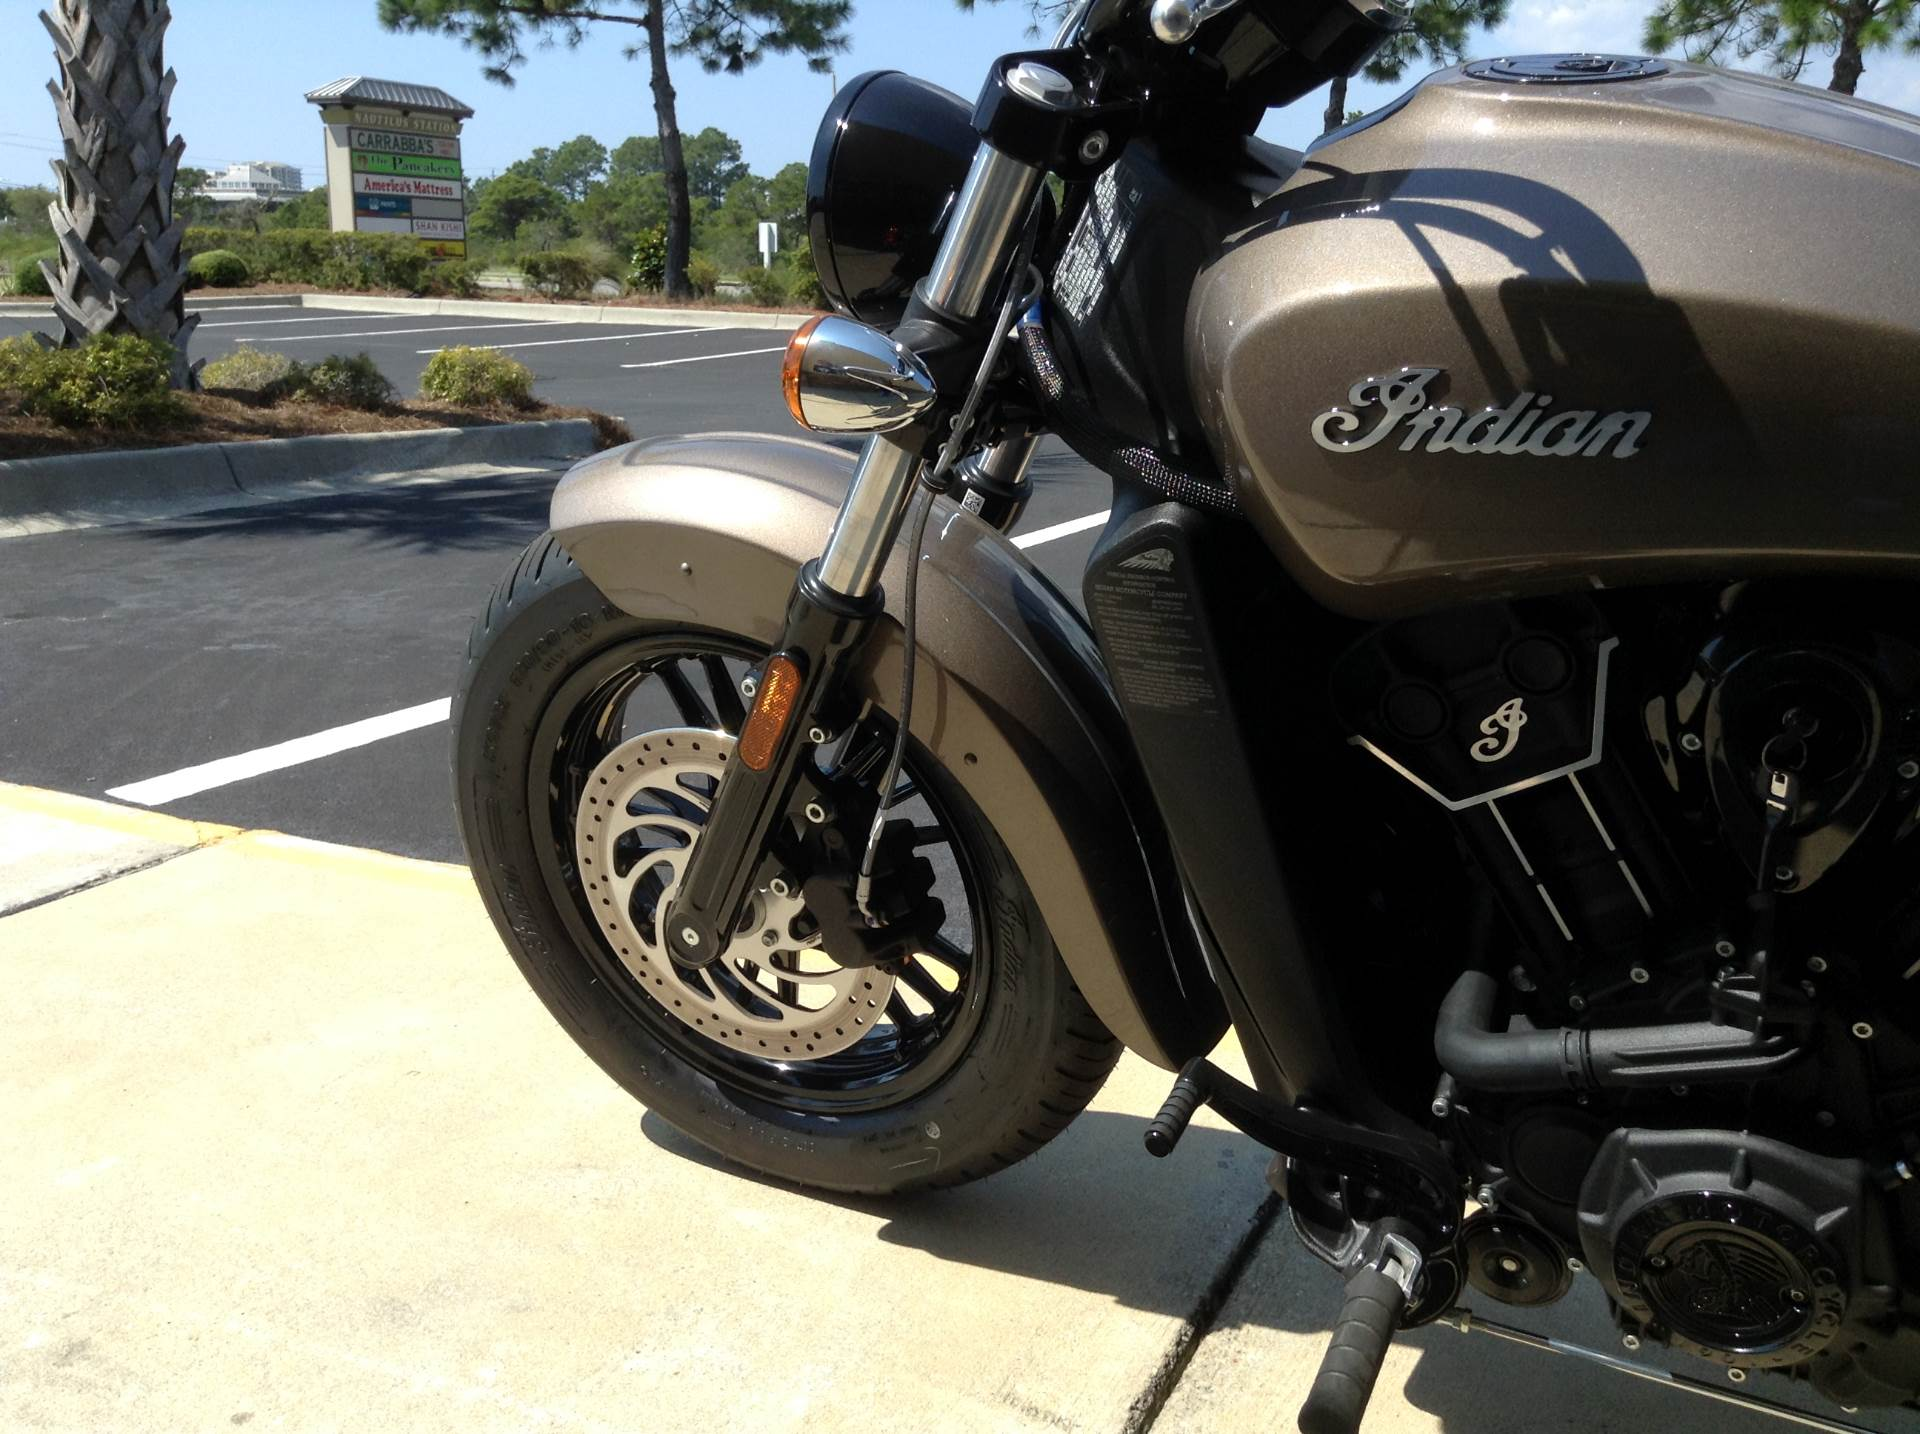 2018 Indian SCOUT 60 in Panama City Beach, Florida